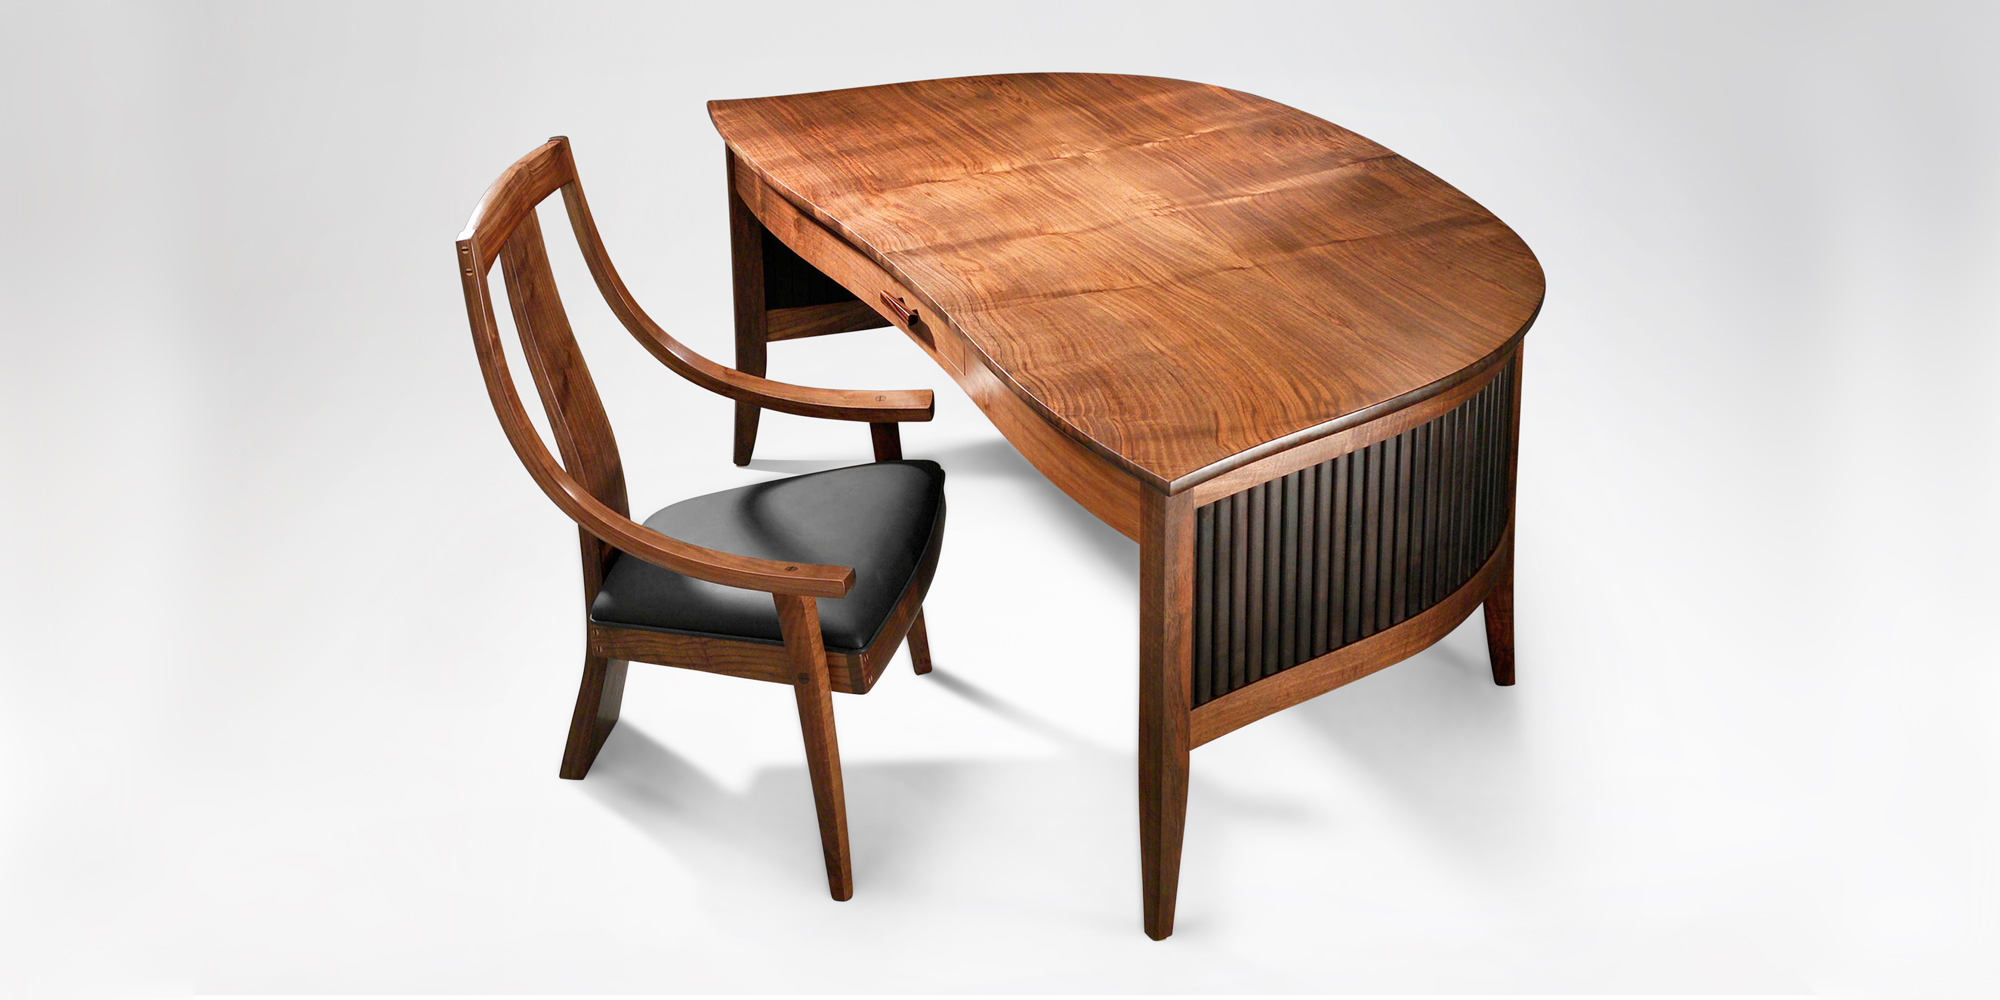 The handmade wraparound Savik Desk